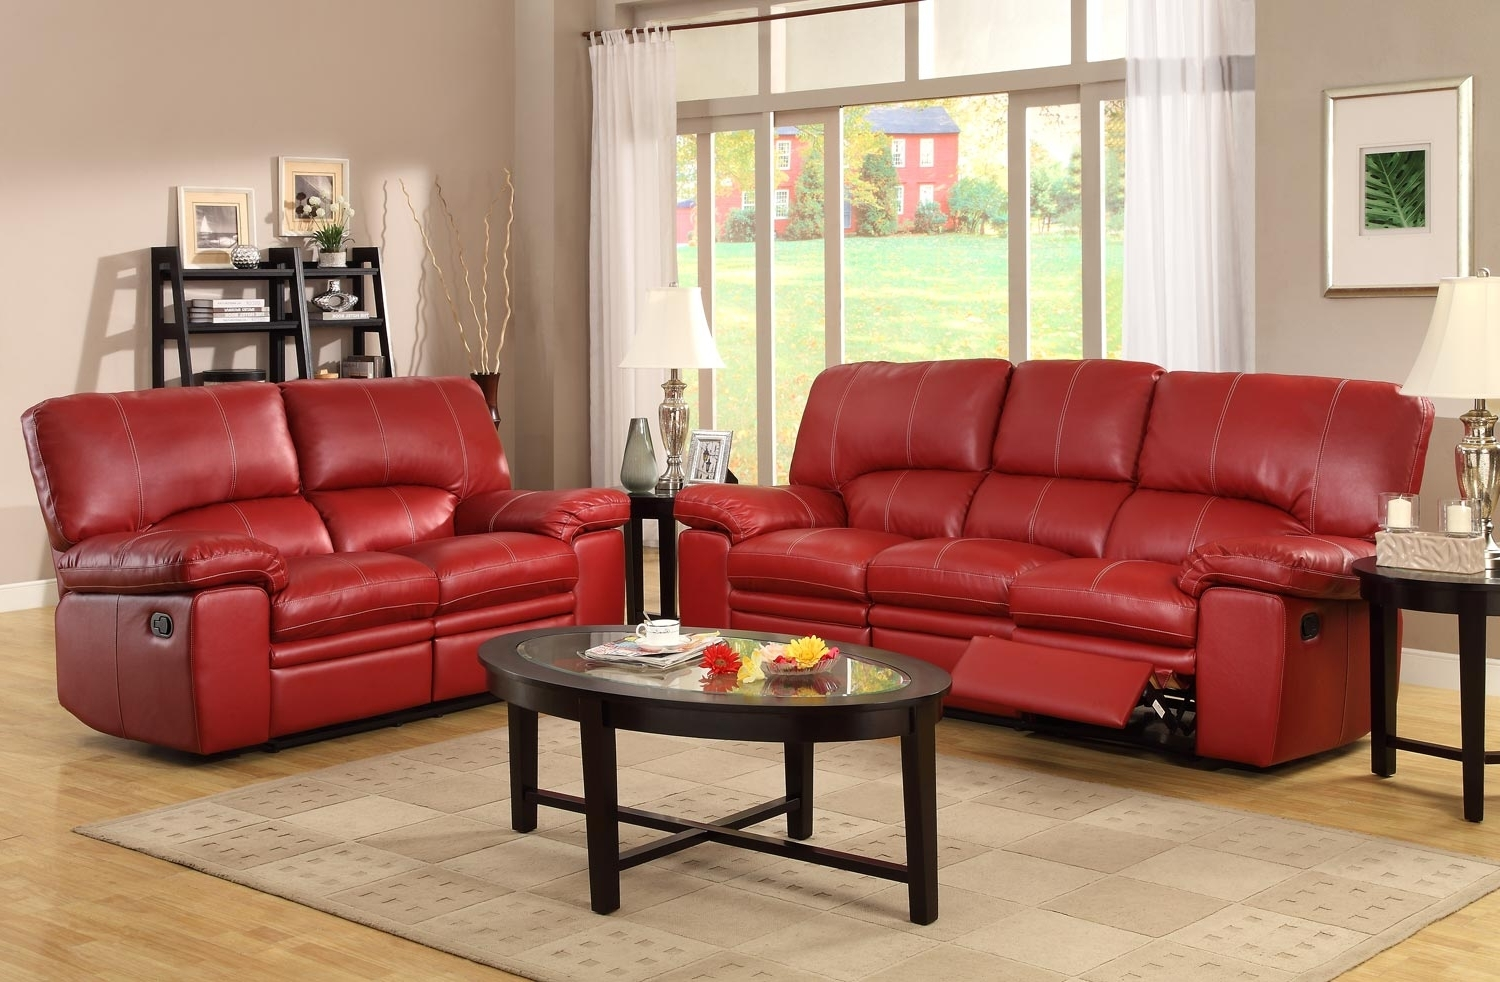 Red Leather Couches For Living Room For Most Popular Great Red Leather Sofa Set 75 In Living Room Sofa Ideas With Red (View 7 of 15)